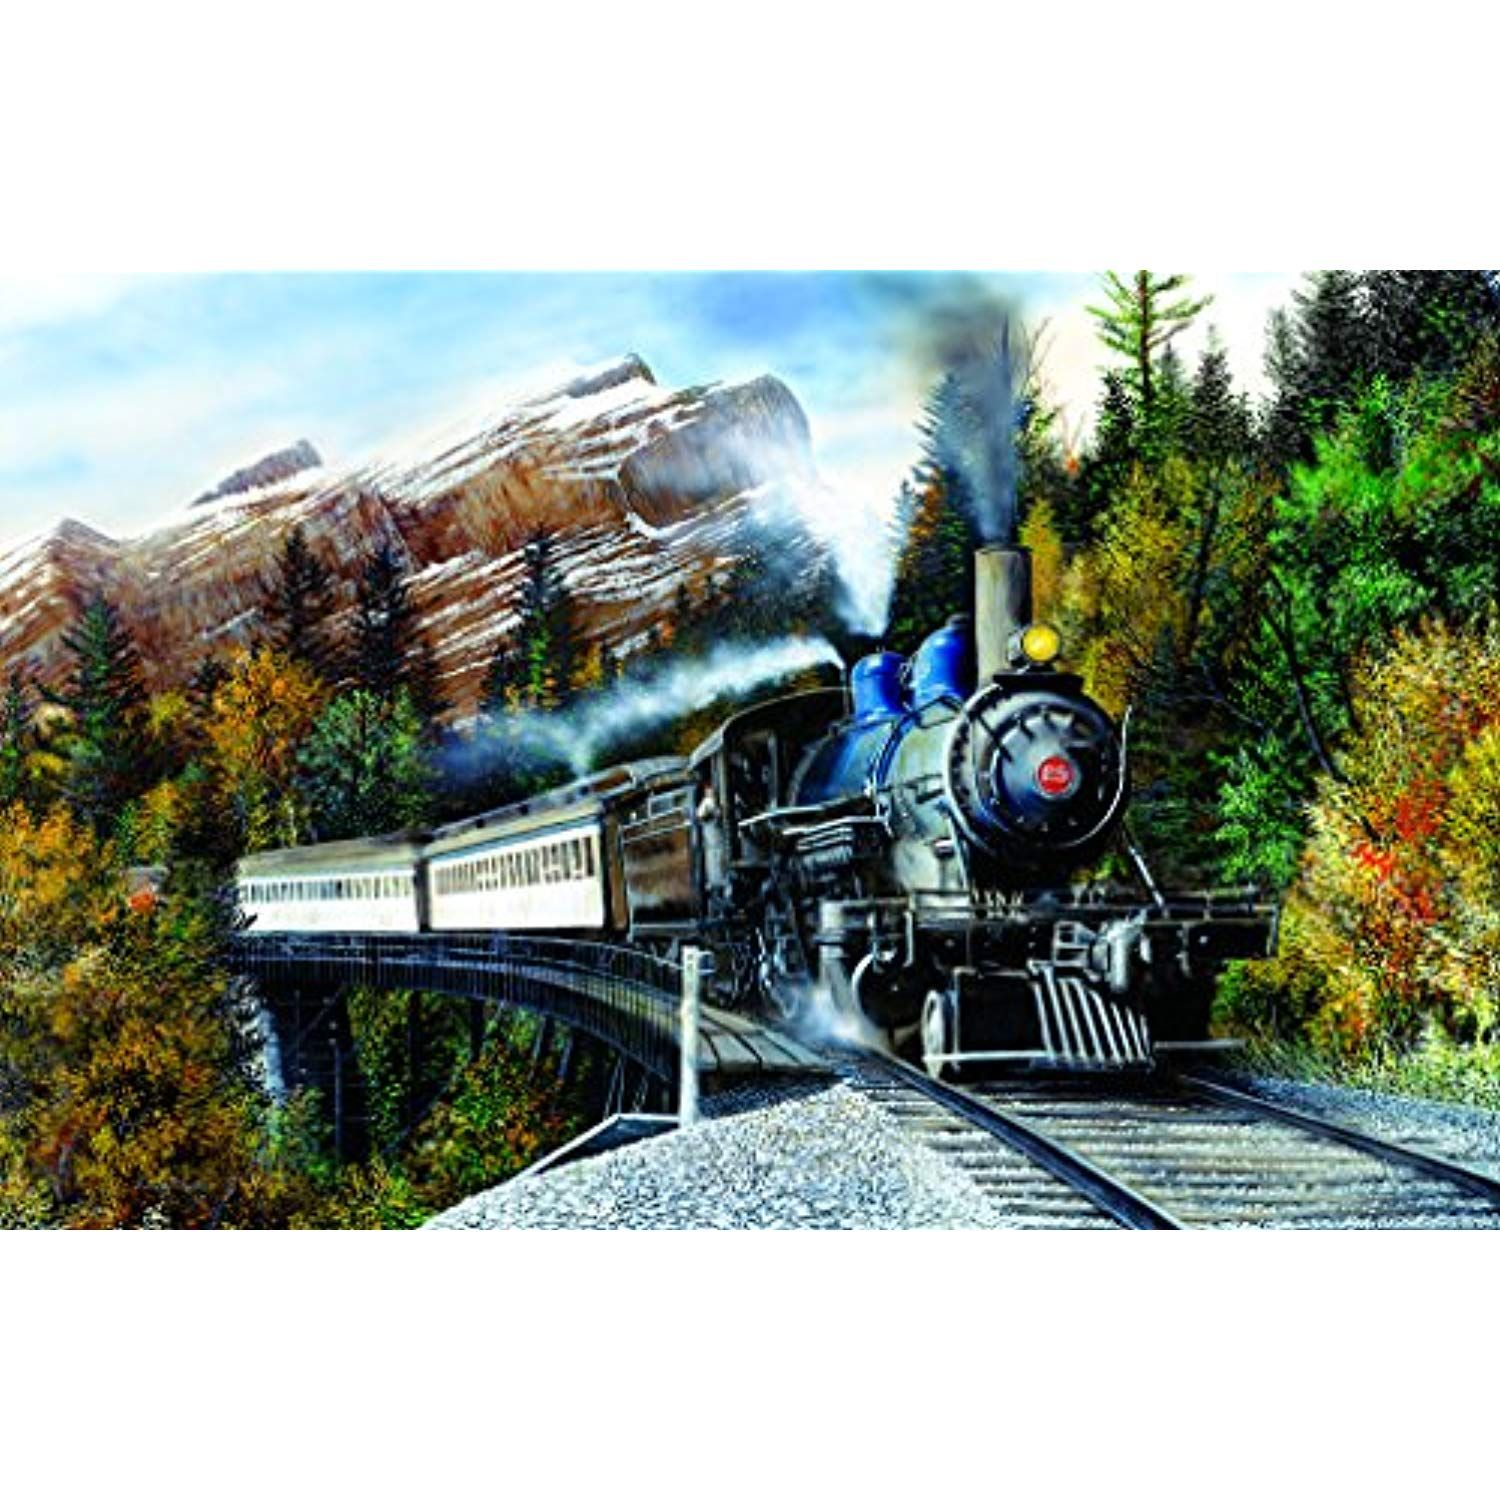 Autumn Mist 1000 pc Jigsaw Puzzle by SunsOut *** Check out